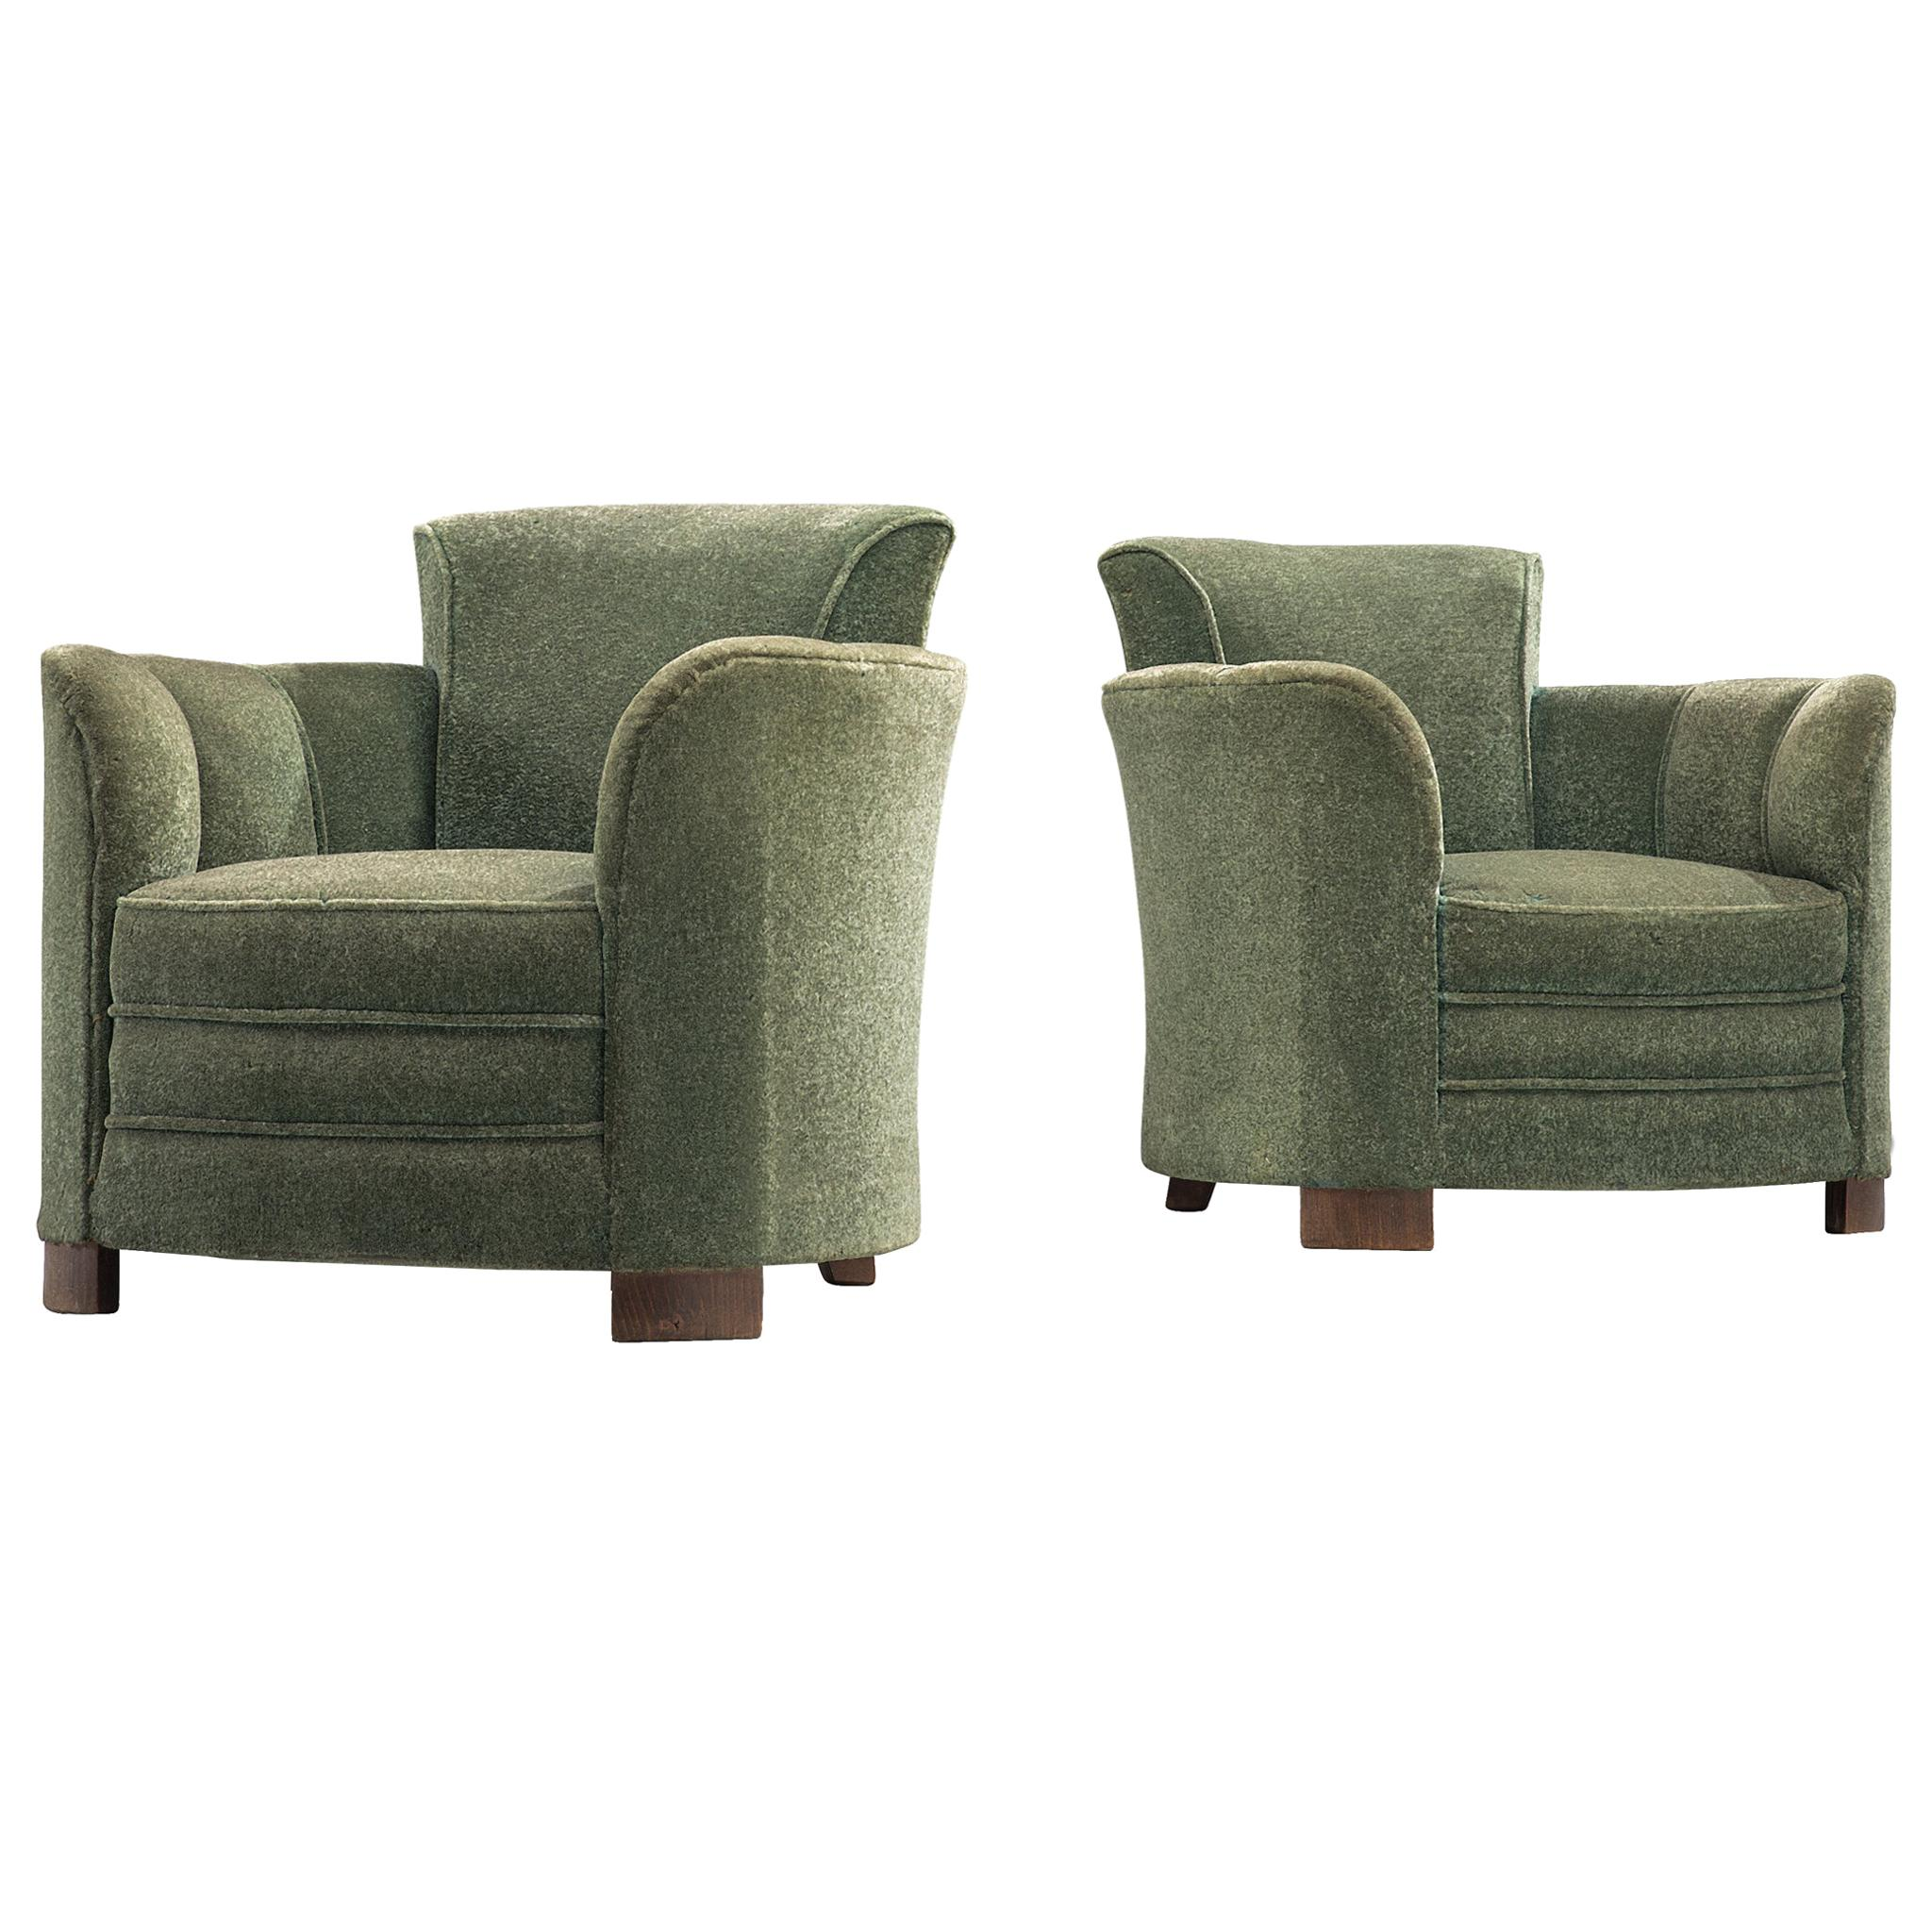 Art Deco Lounge Chairs in Green Velours, 1940s